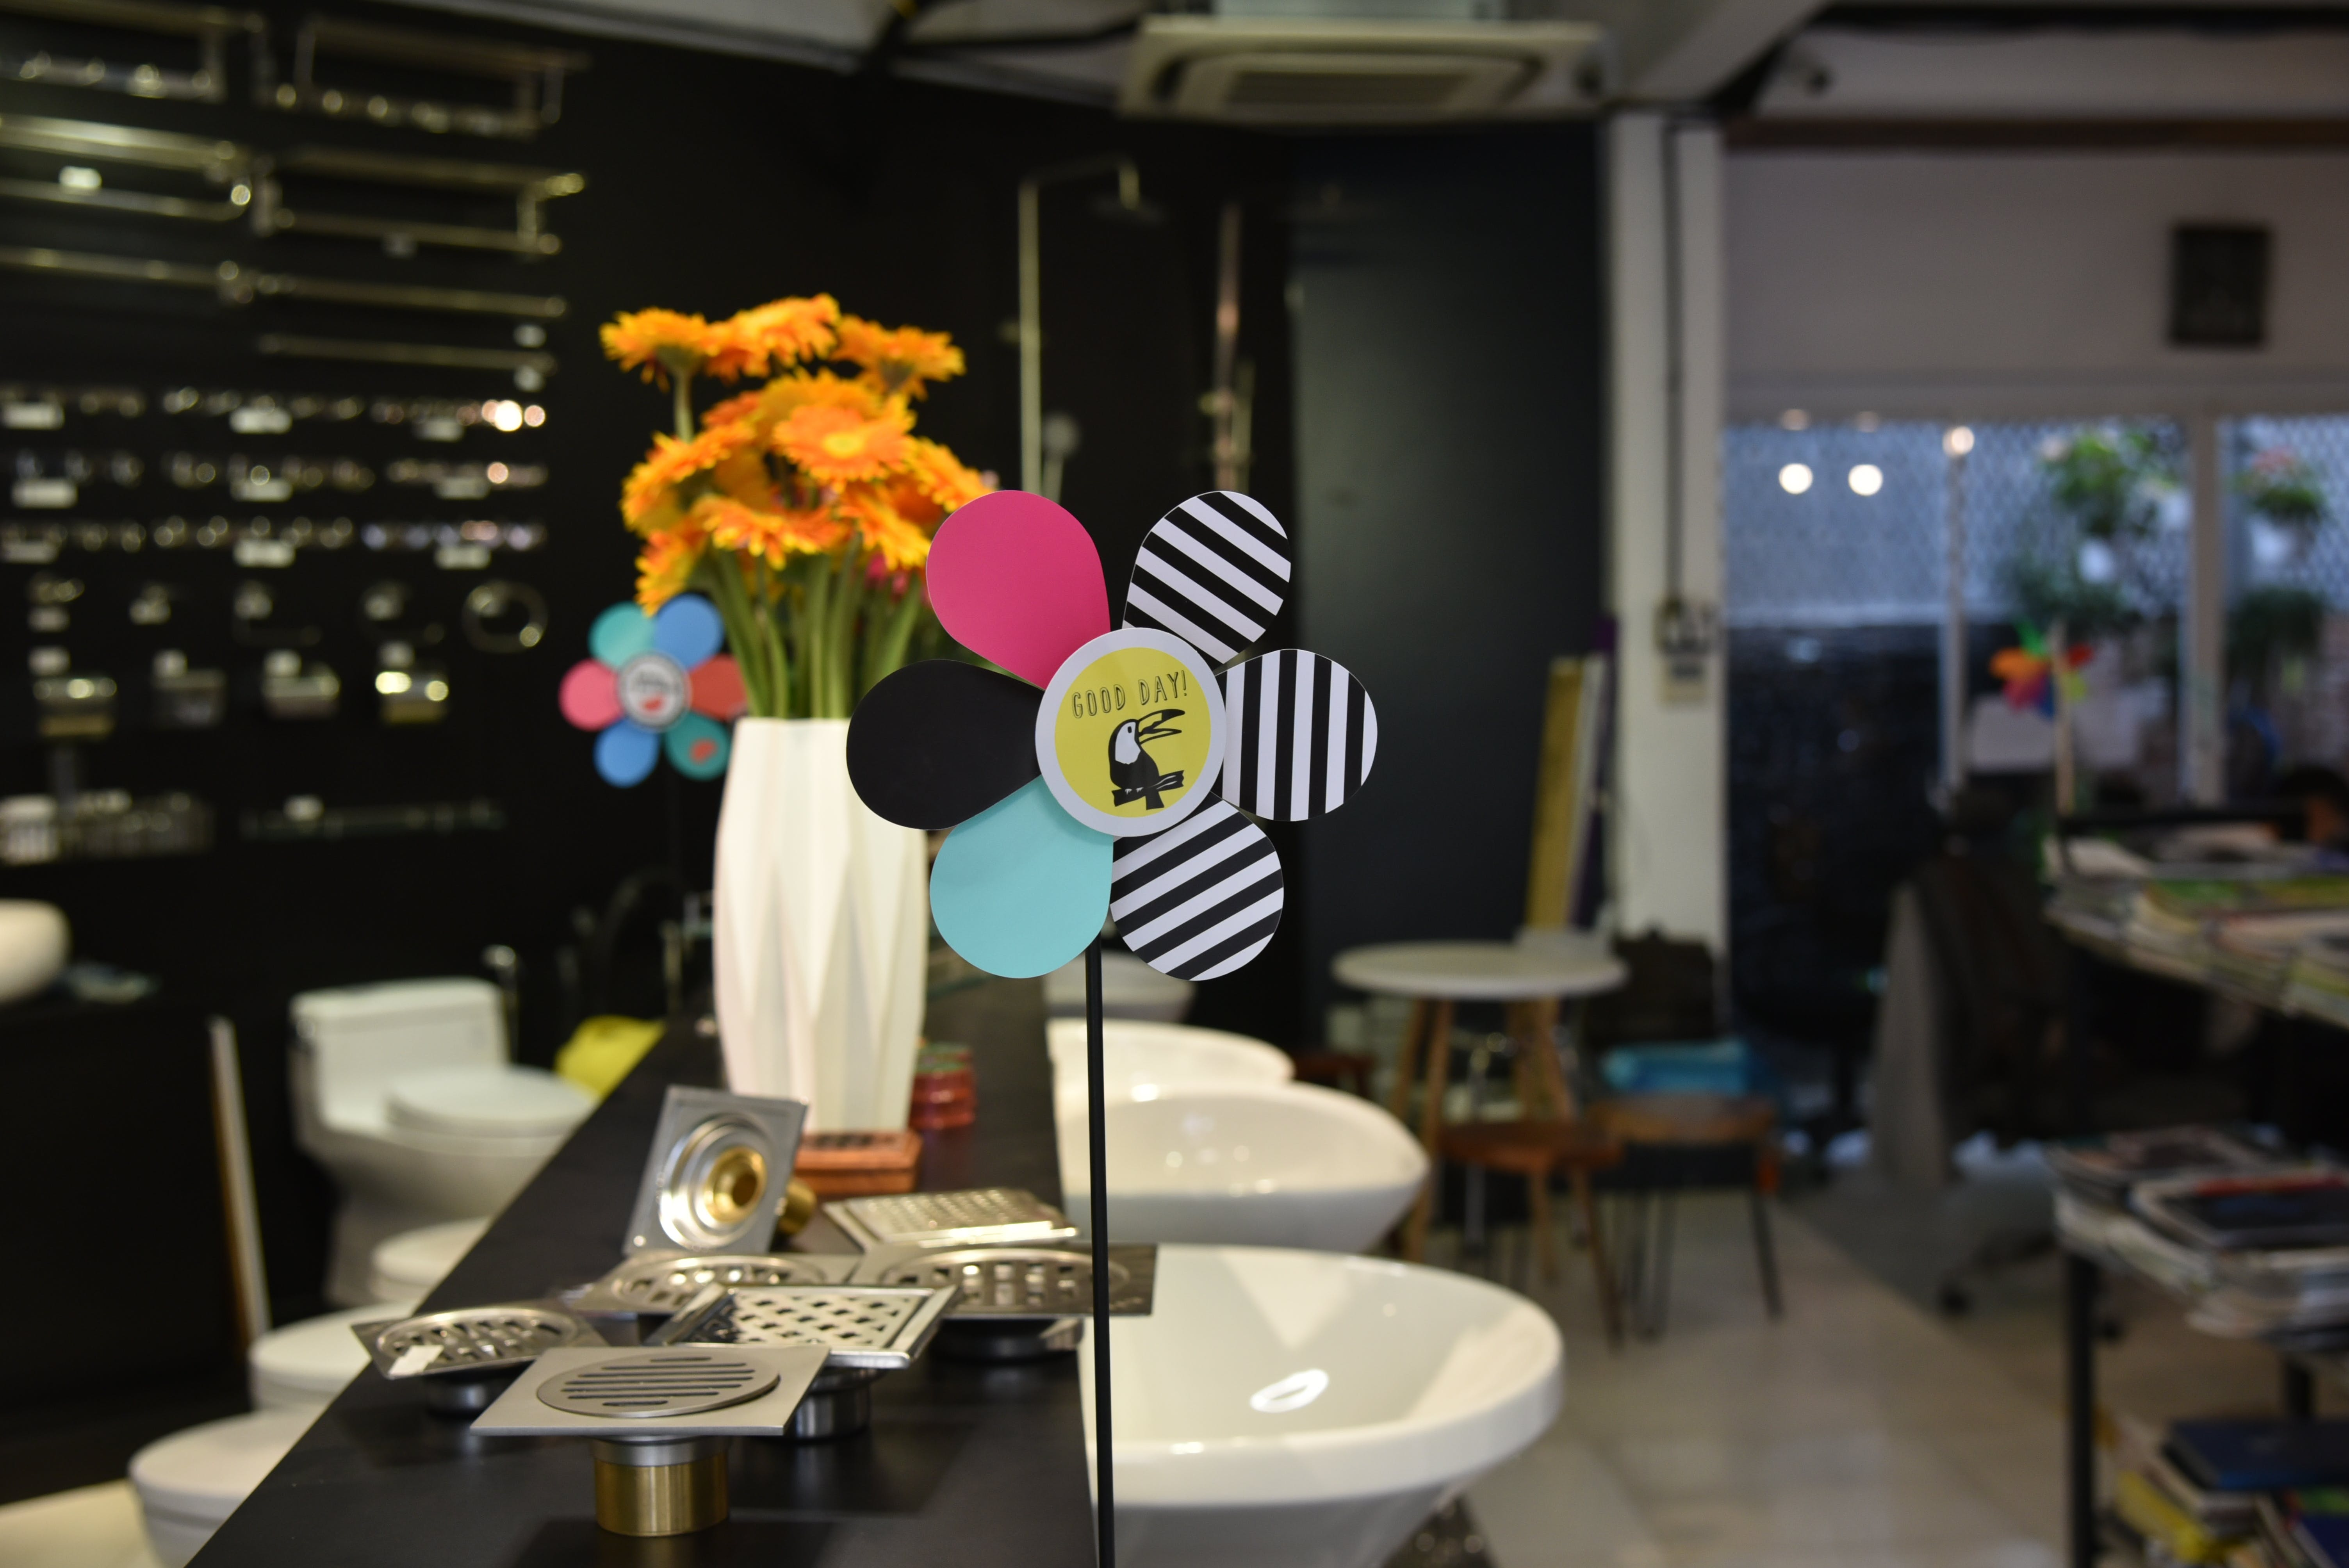 Assorted-color Flower Decoration Beside Stainless Steel Sink Holes